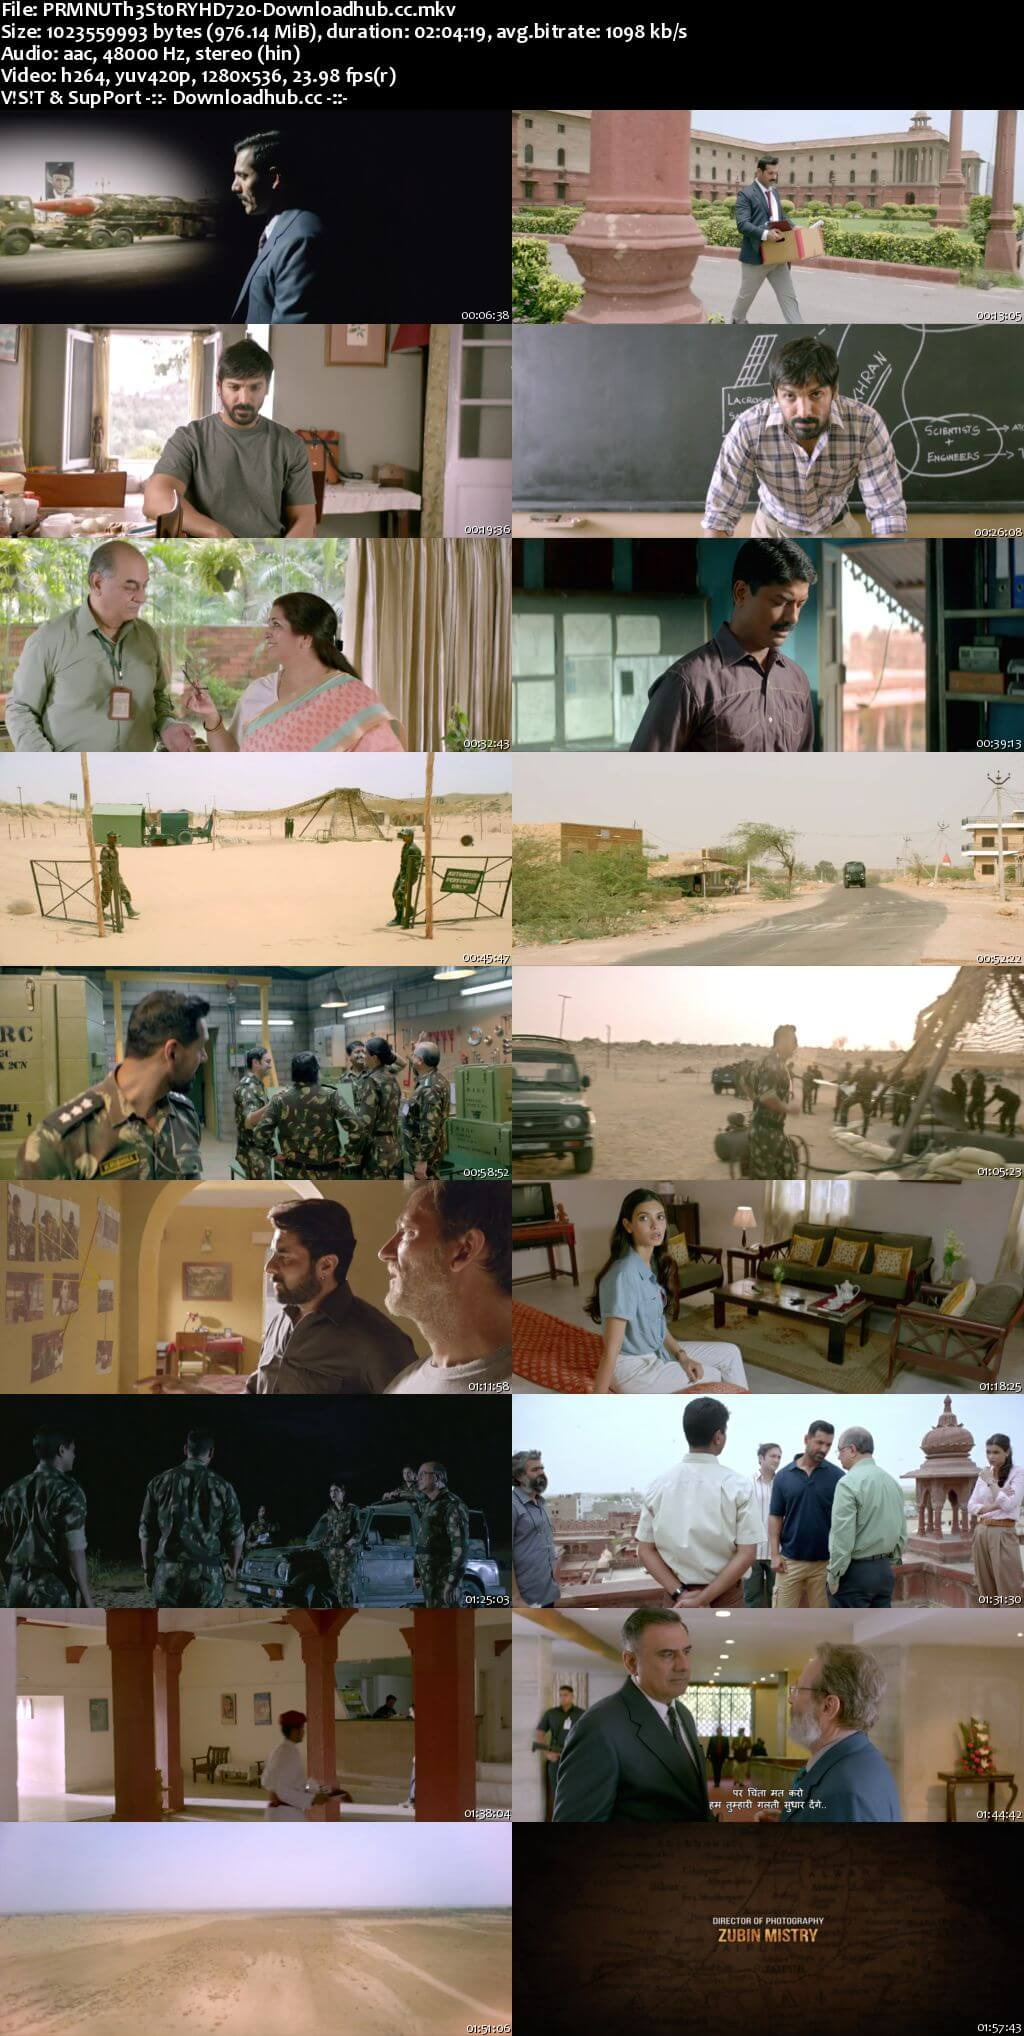 Parmanu The Story of Pokhran 2018 Hindi 720p HDRip